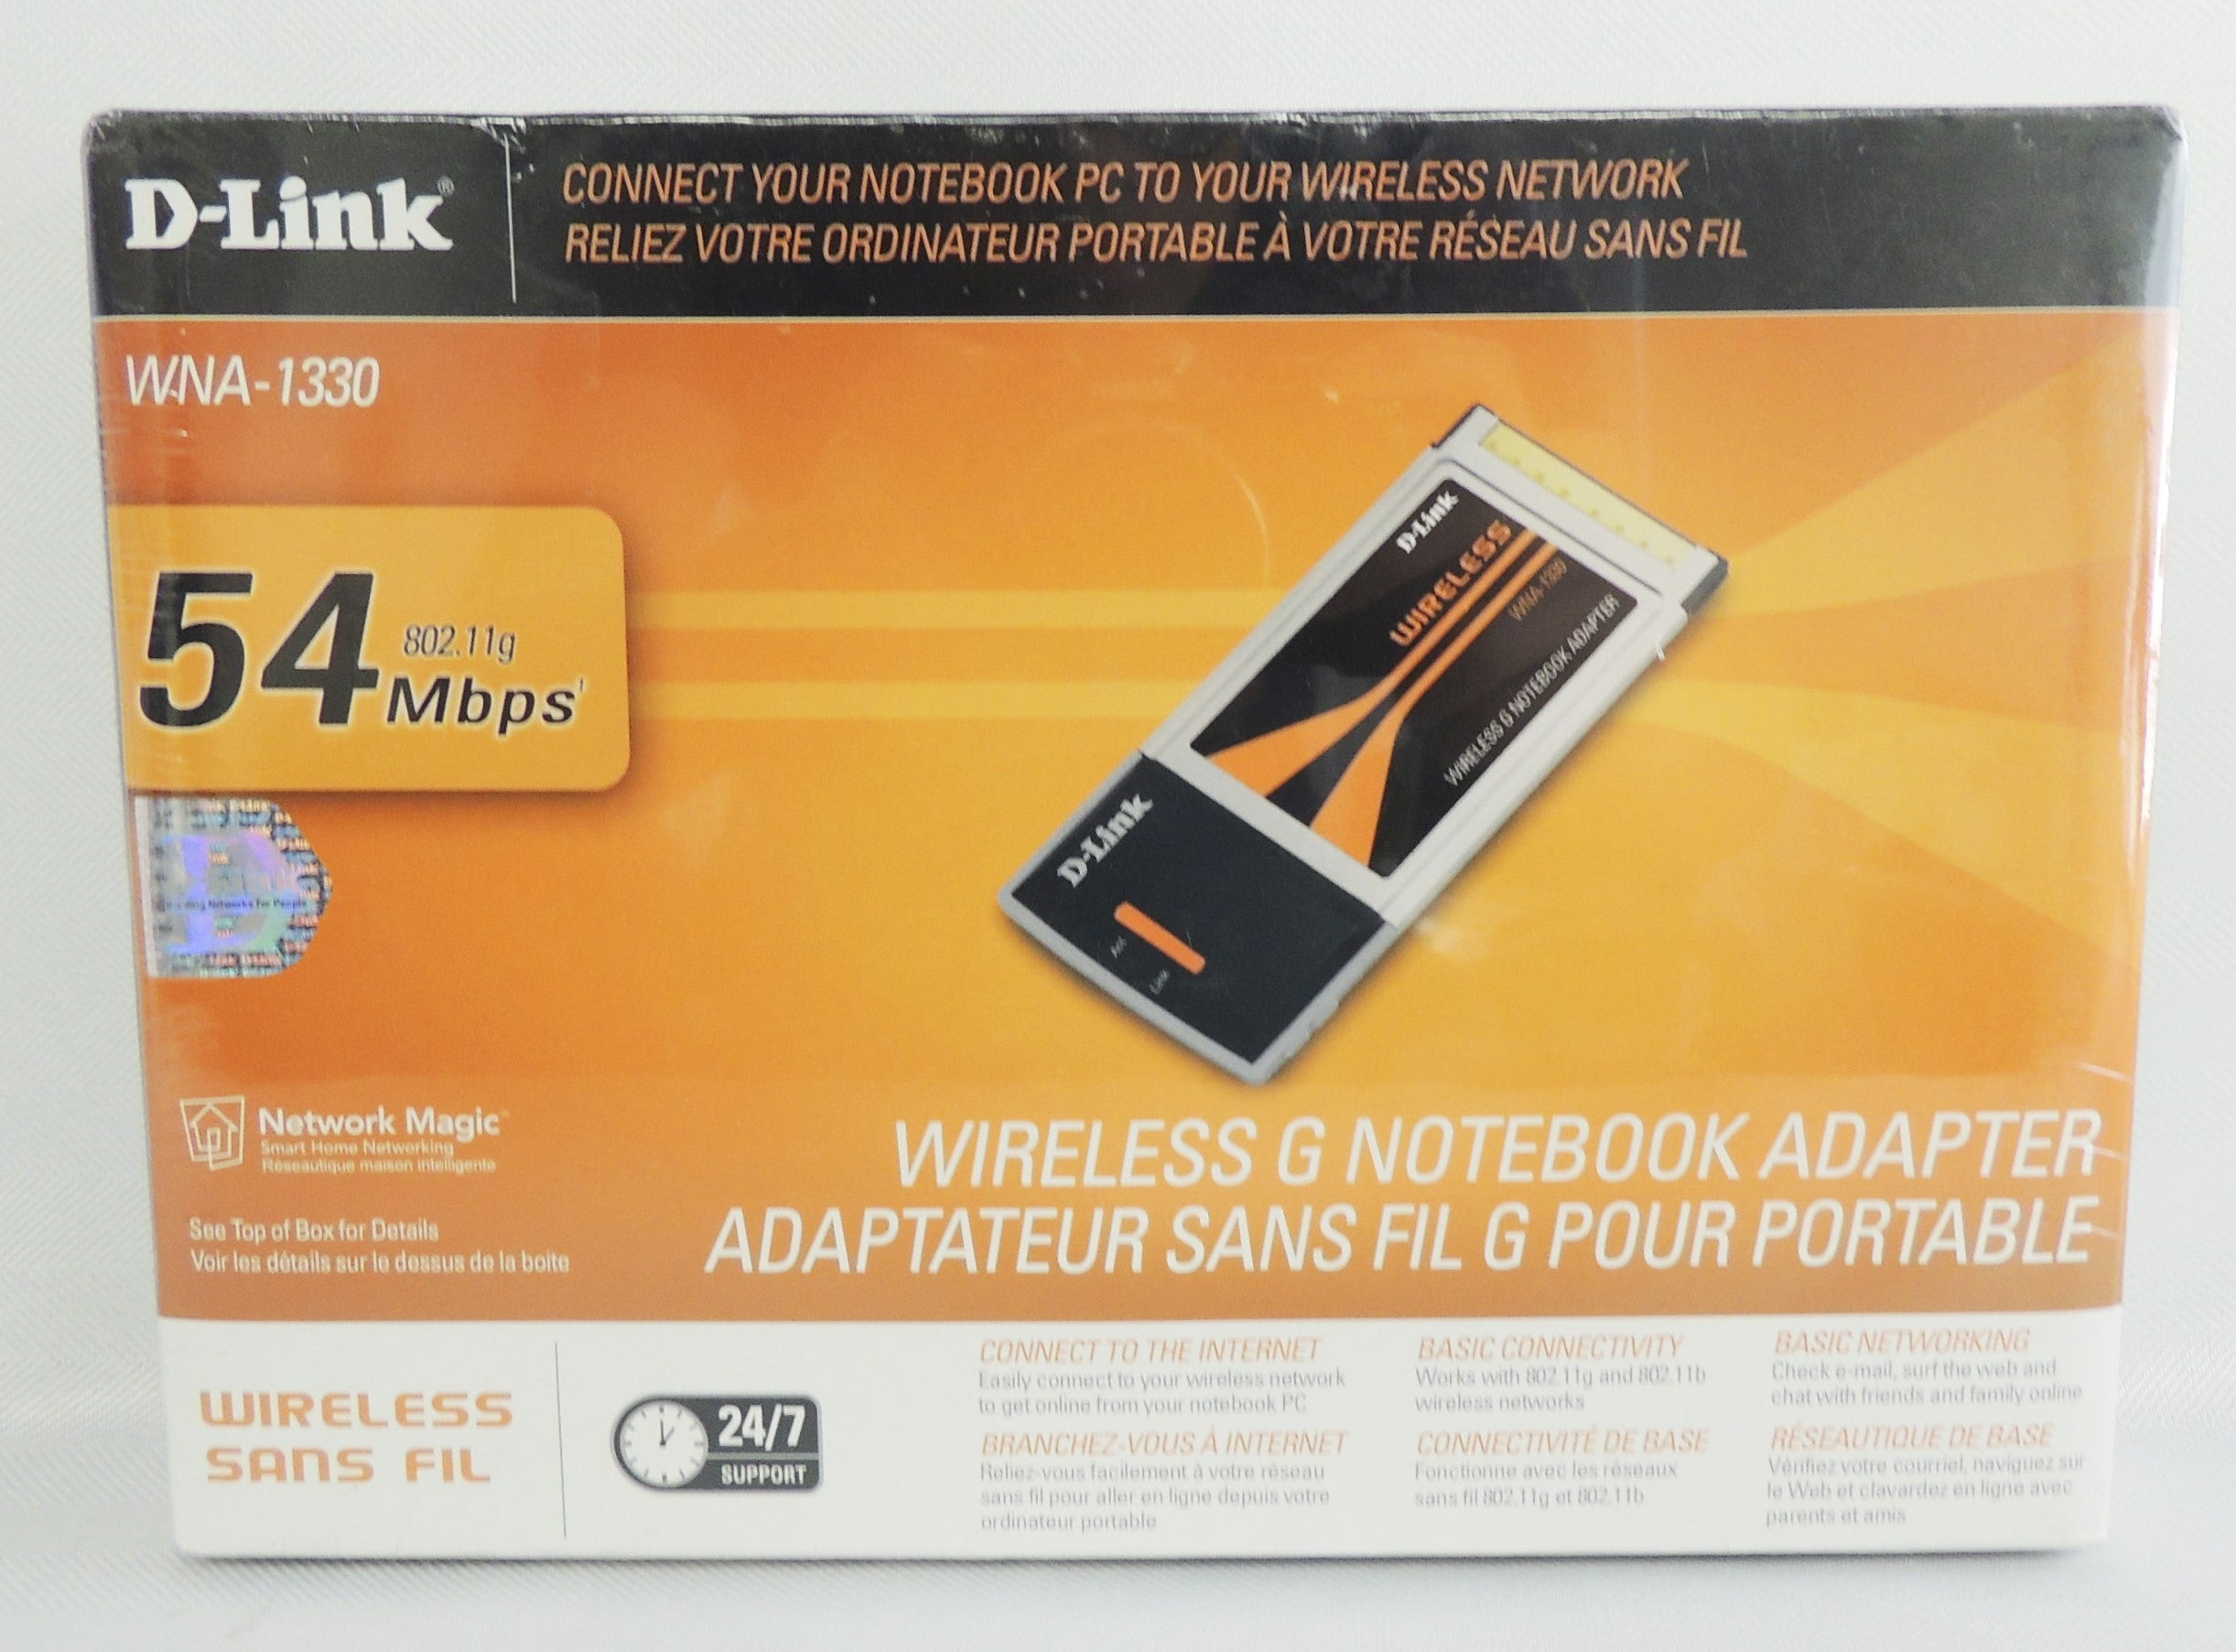 D-link WNA-1330 802.11g/b Wireless Adapter 54Mbps Wireless for laptop